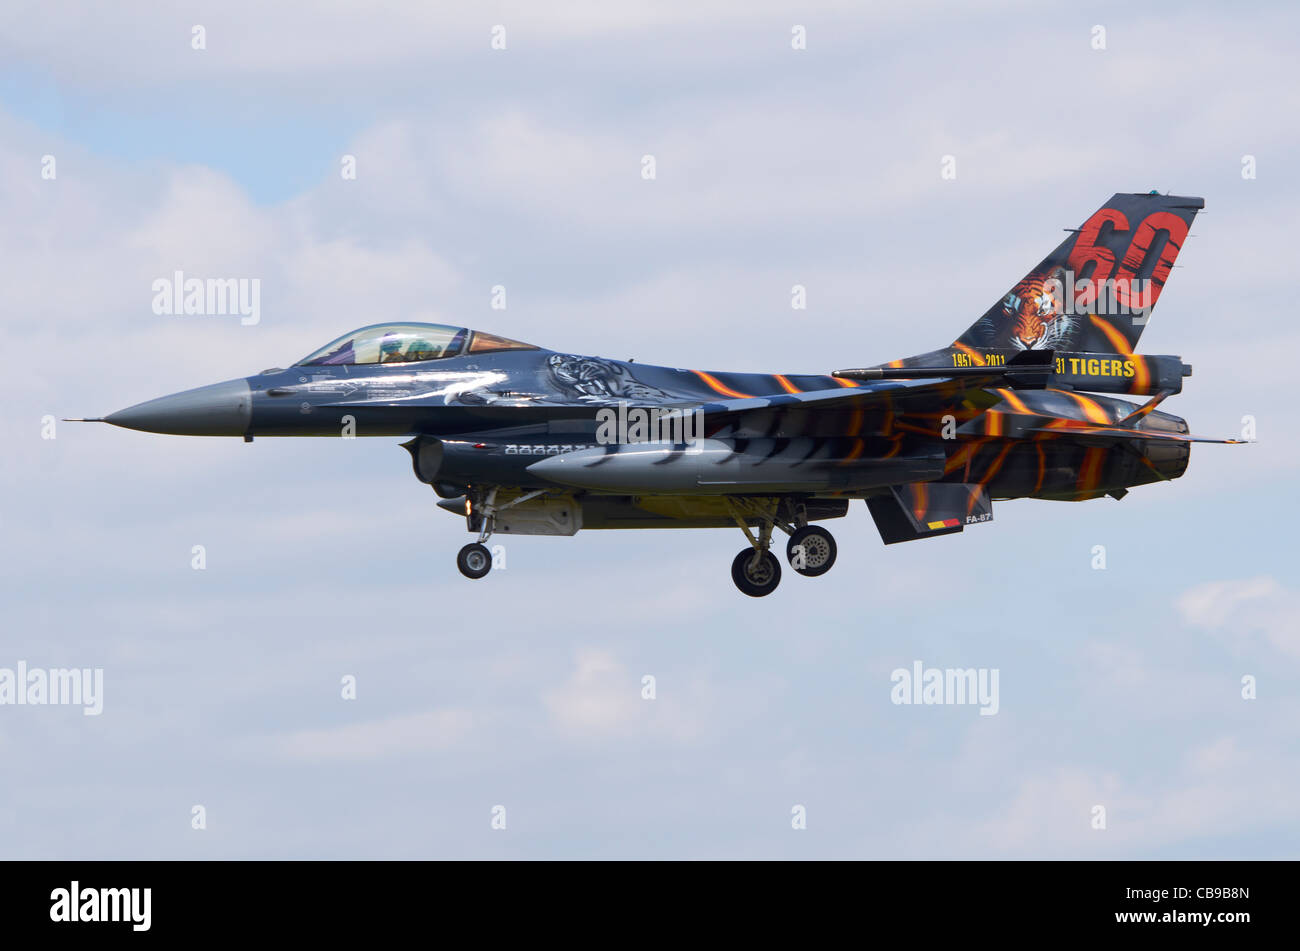 SABCA F-16AM Fighting Falcon variant of the F-16, operated by the Belgian Air Force, on approach for landing at - Stock Image